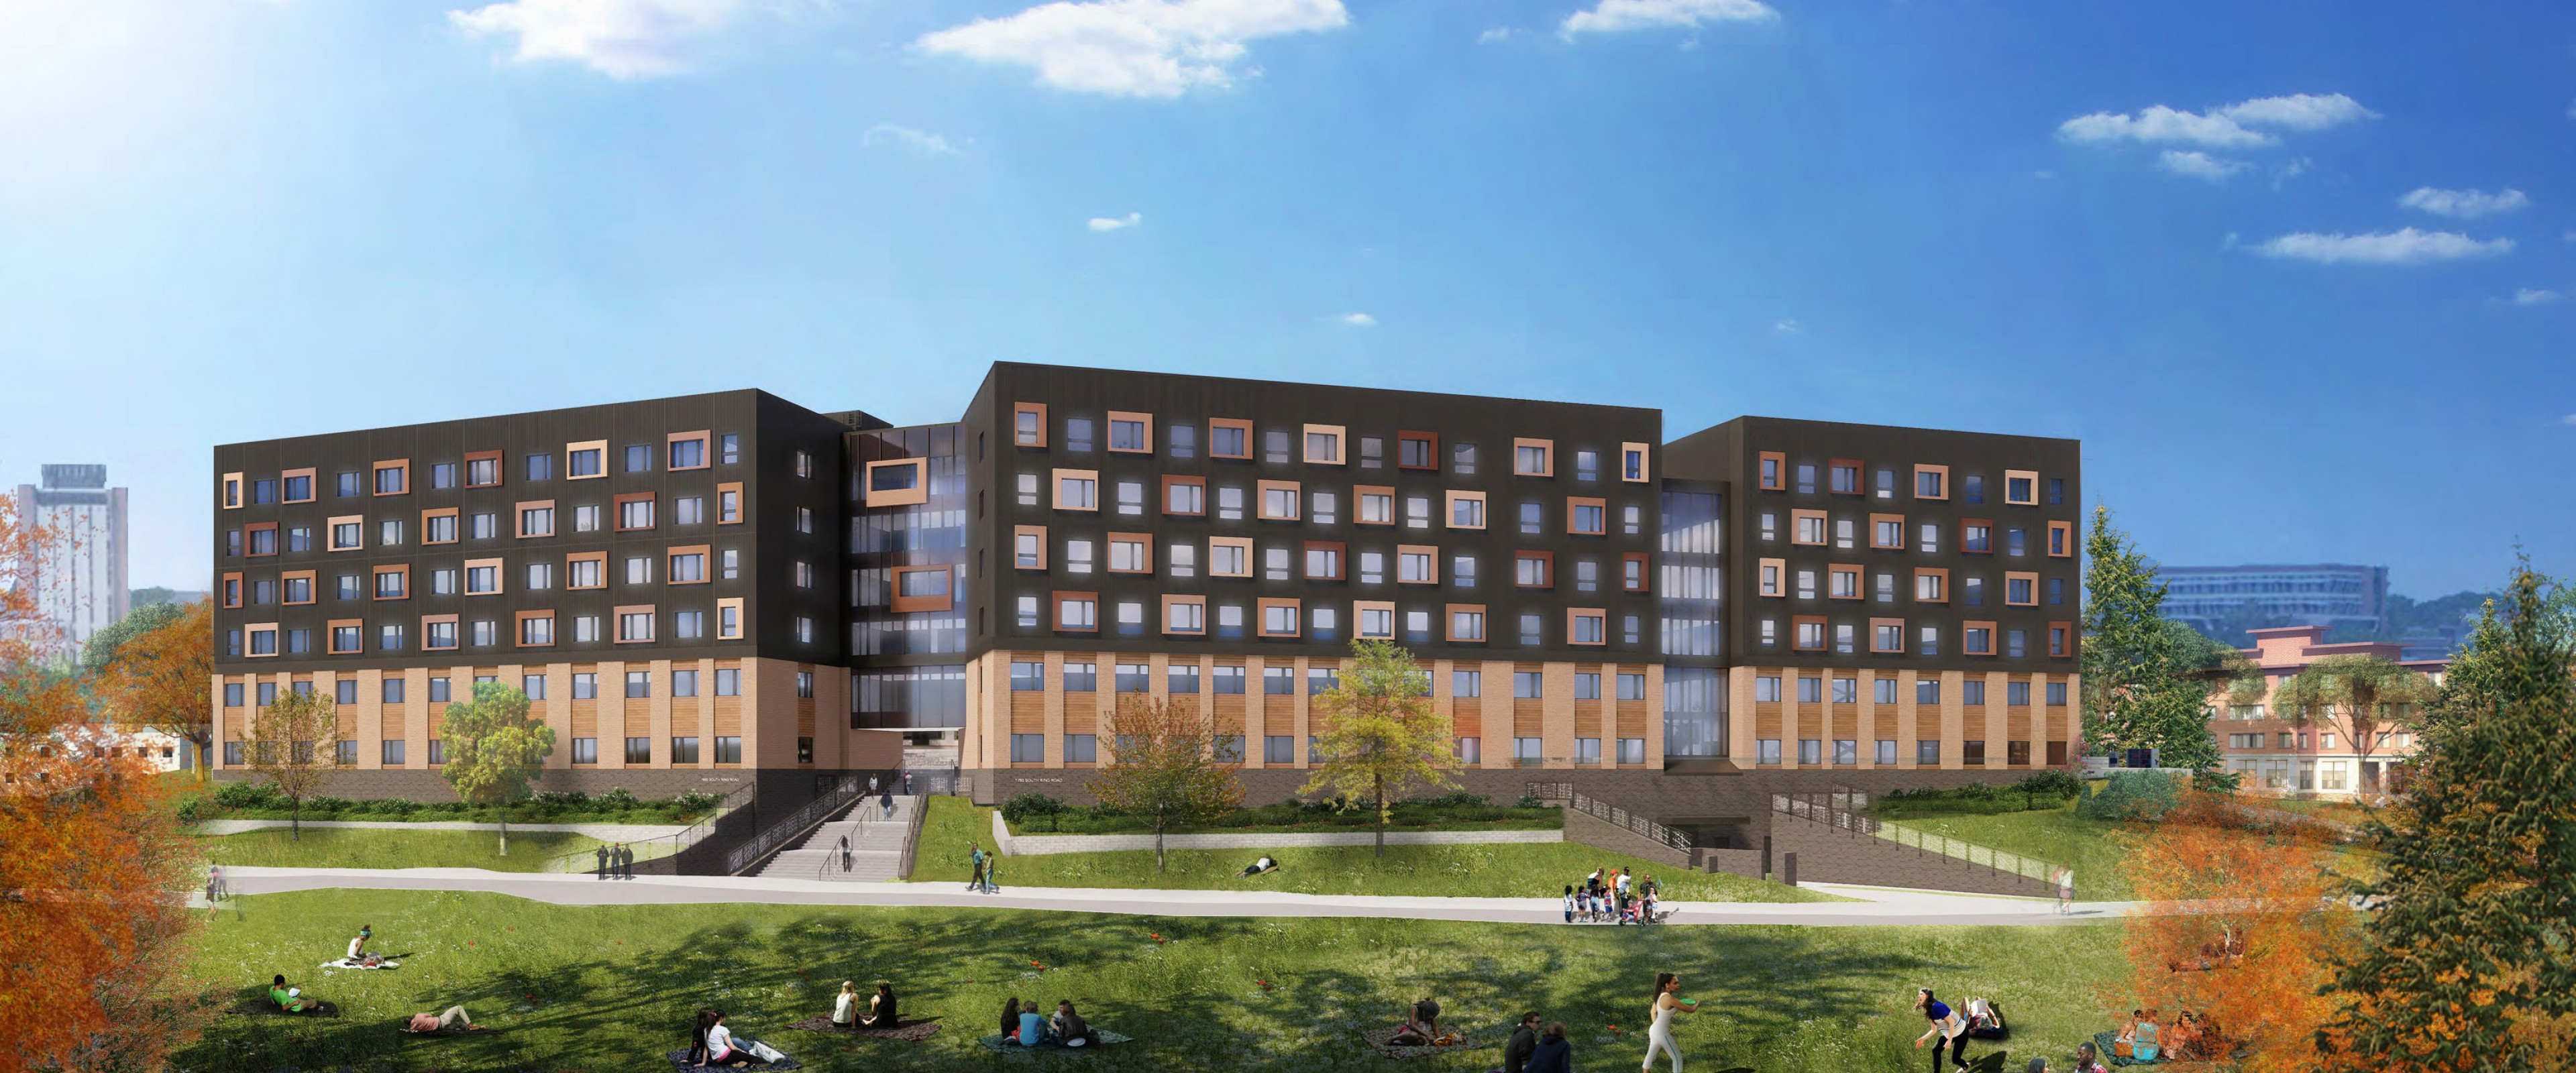 Rendering of the exterior of the Arcadia Flats student apartment buildings